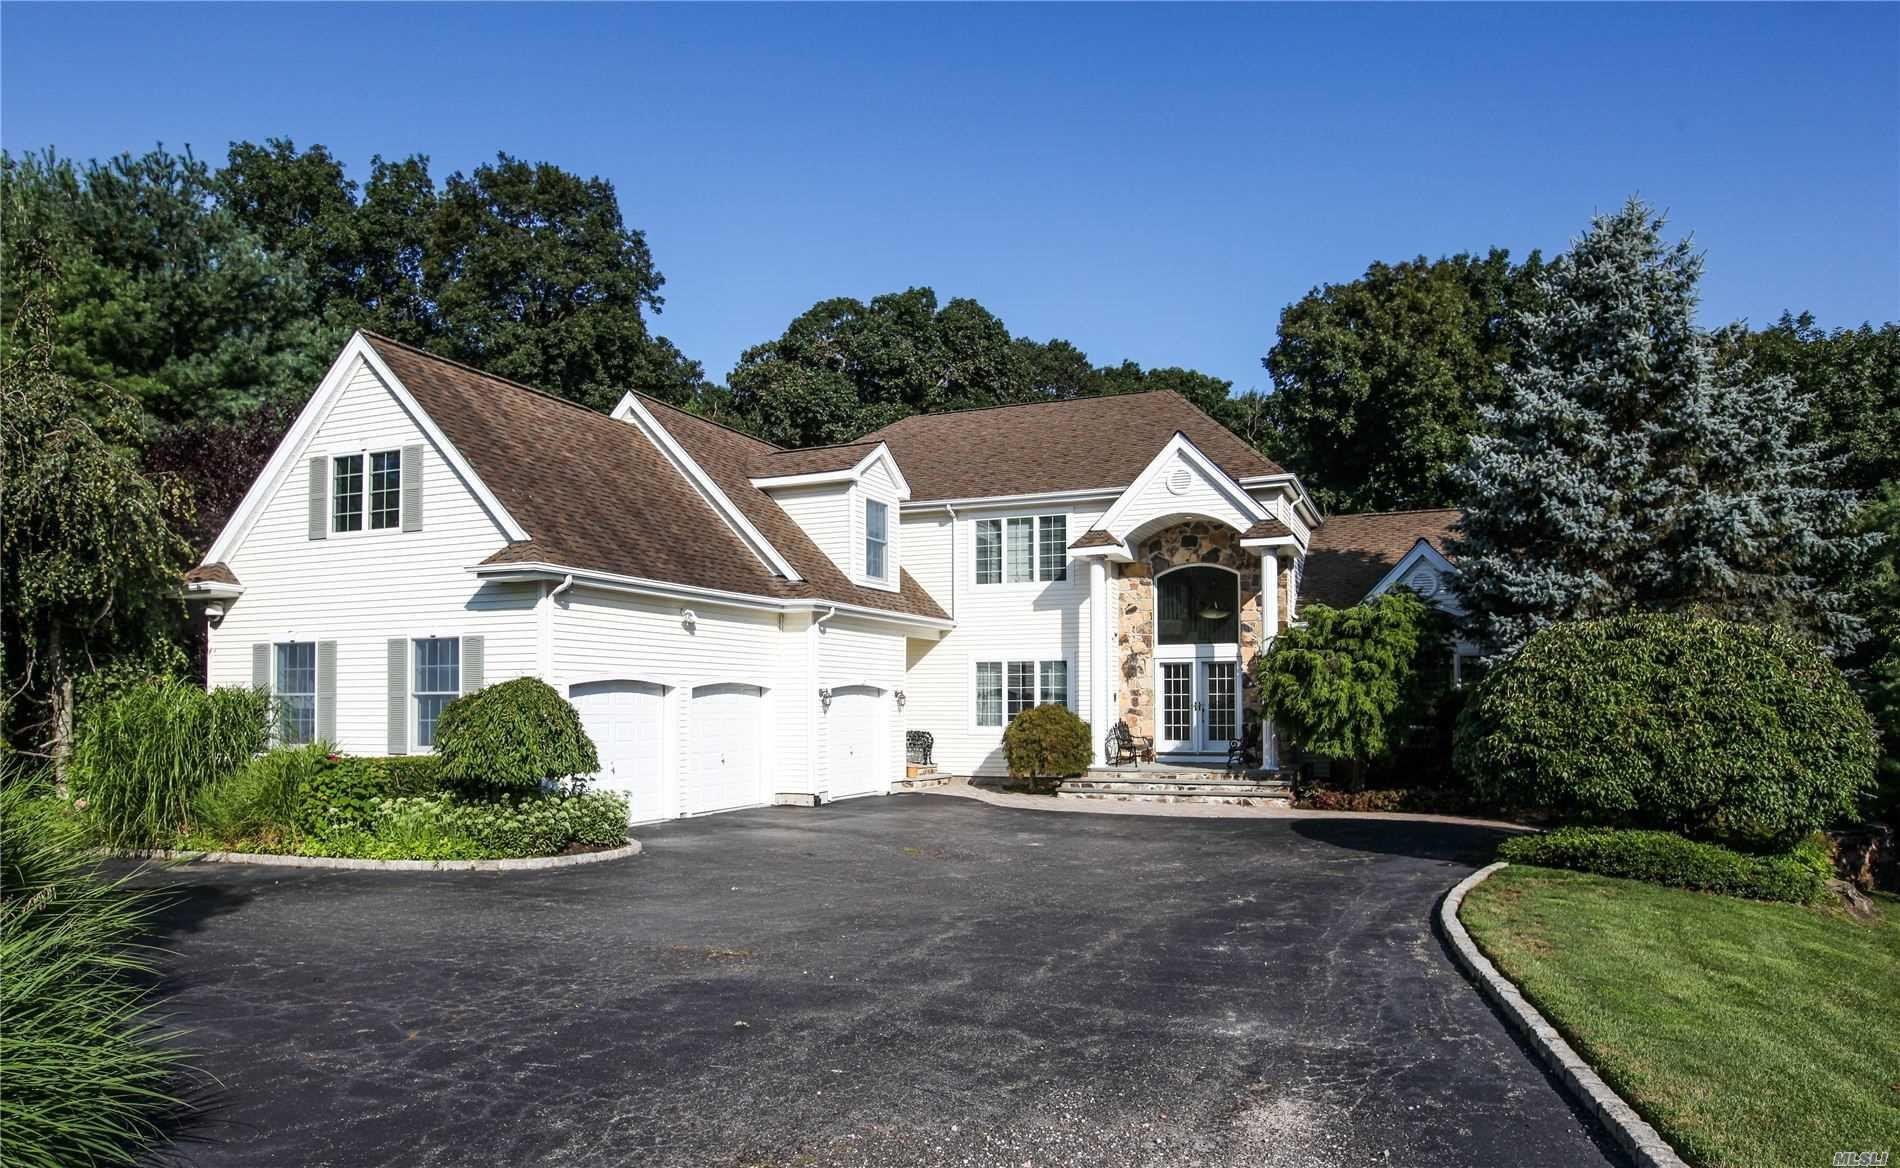 47 Hunting Hollow Court, Dix Hills, NY 11746 - MLS#: 3201579